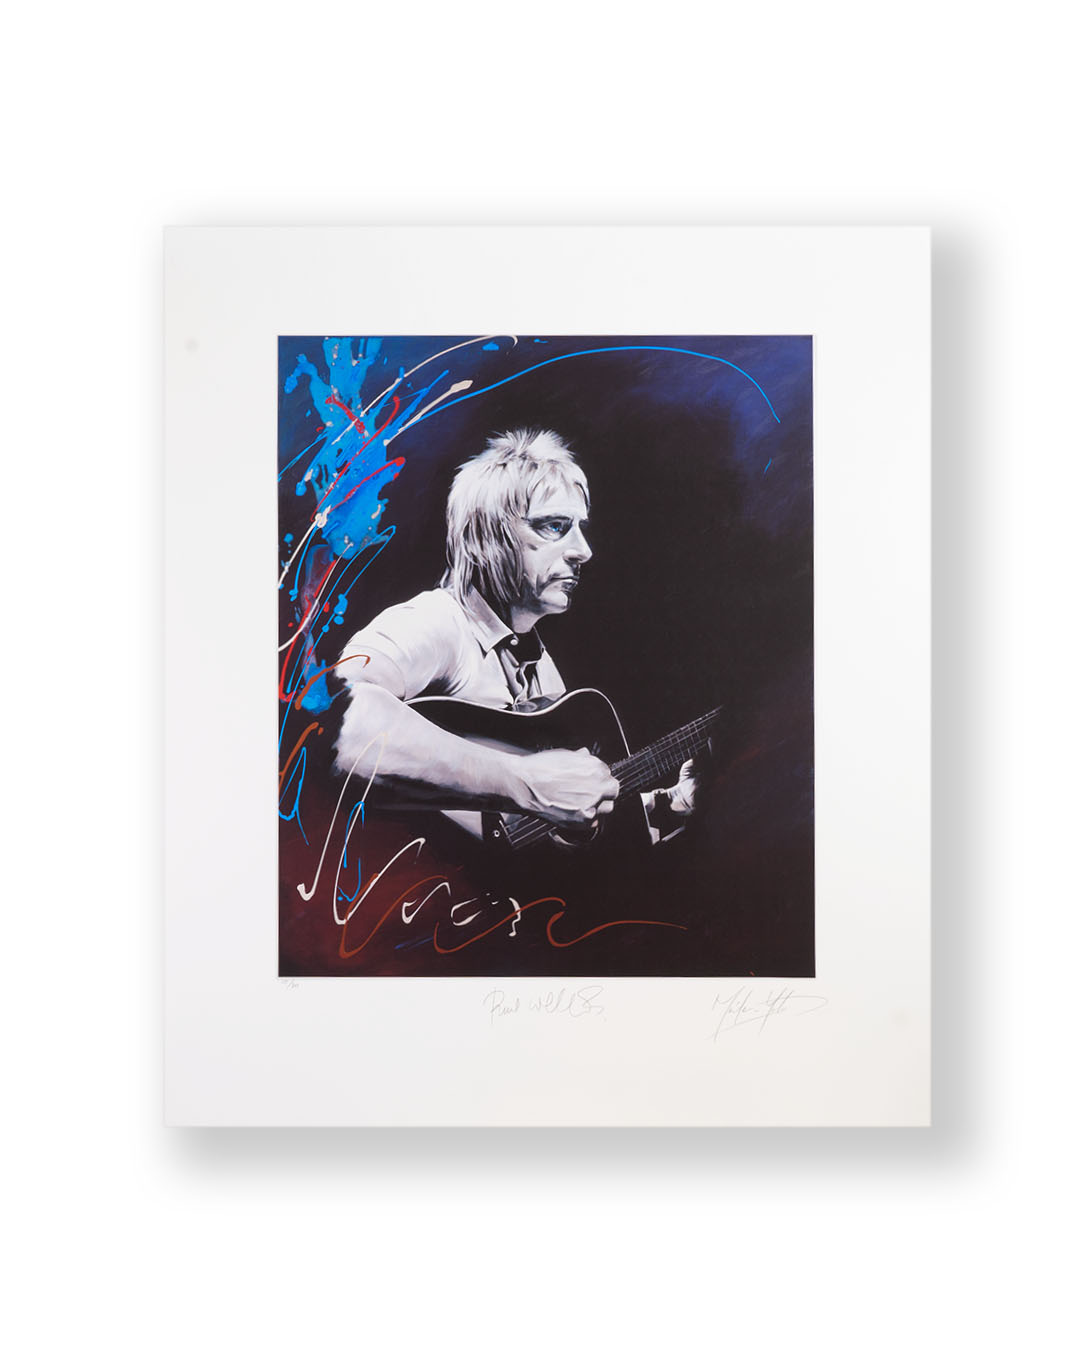 Print Signed by Paul Weller